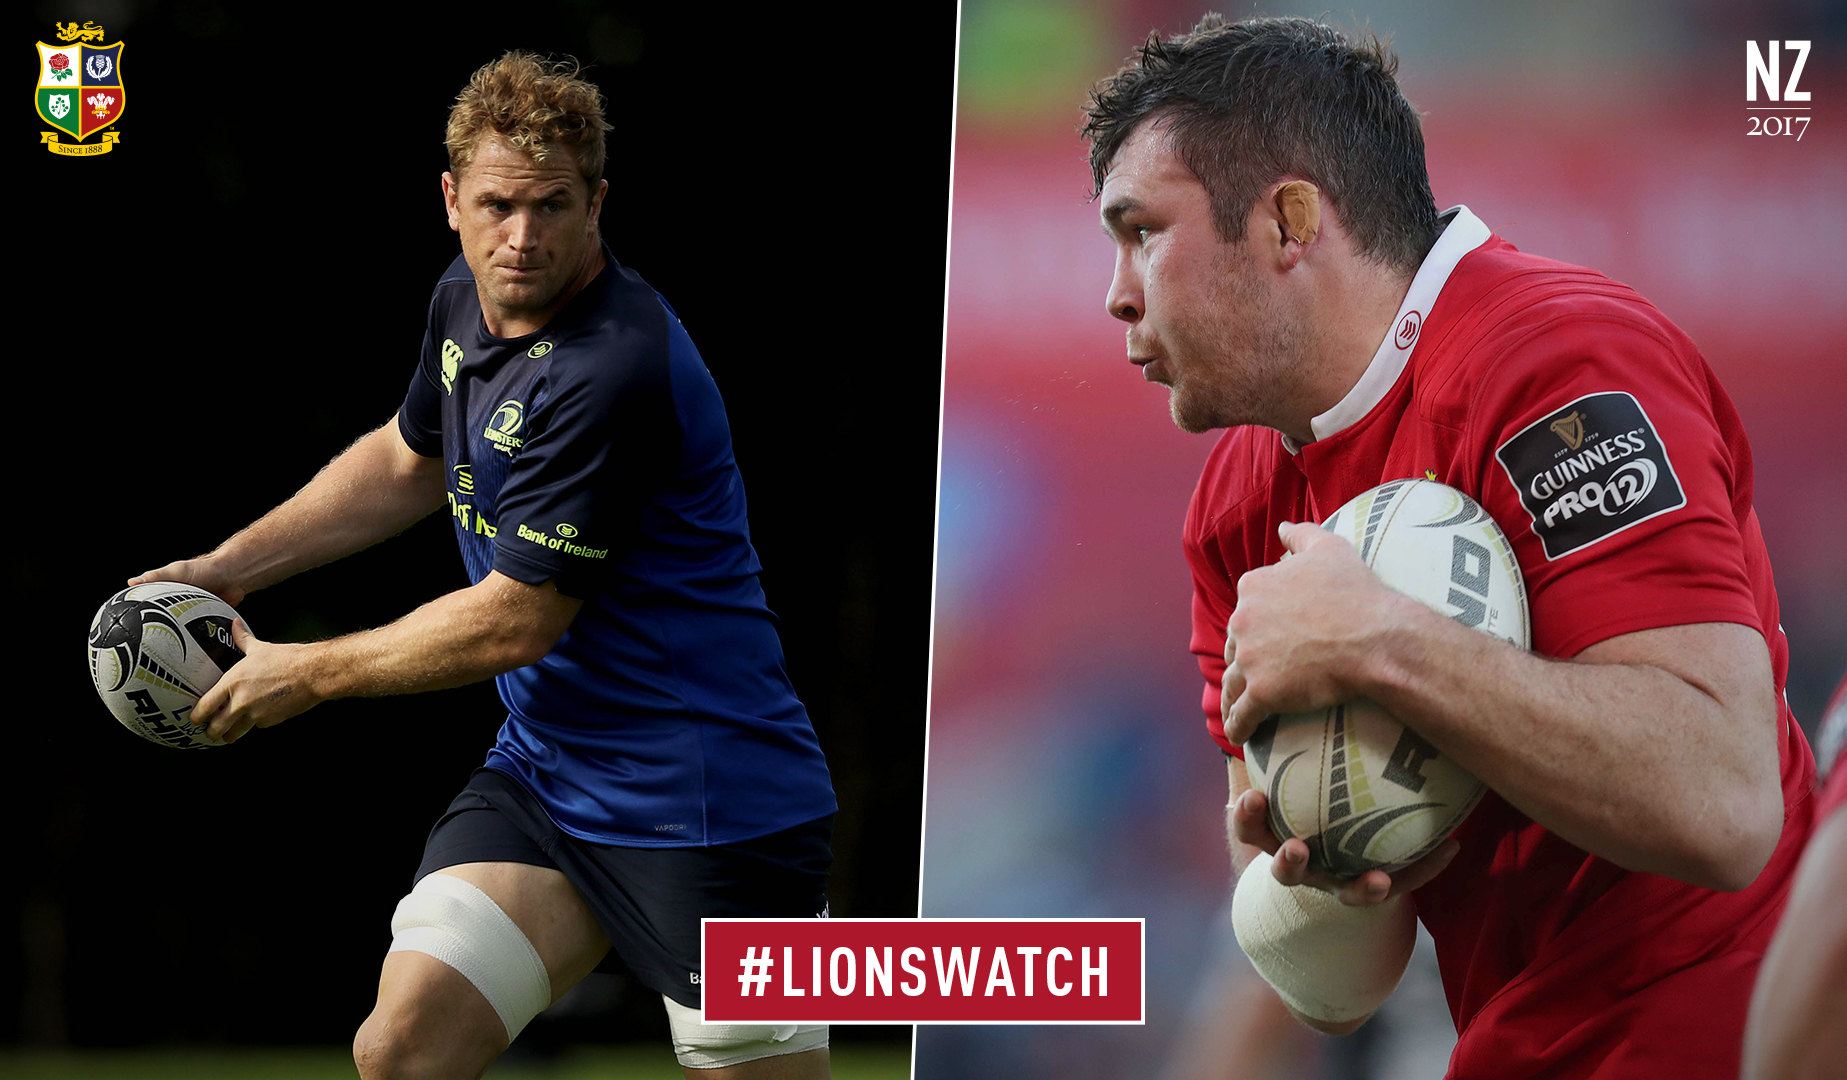 LionsWatch: Guinness PRO12's rivalries are renewed